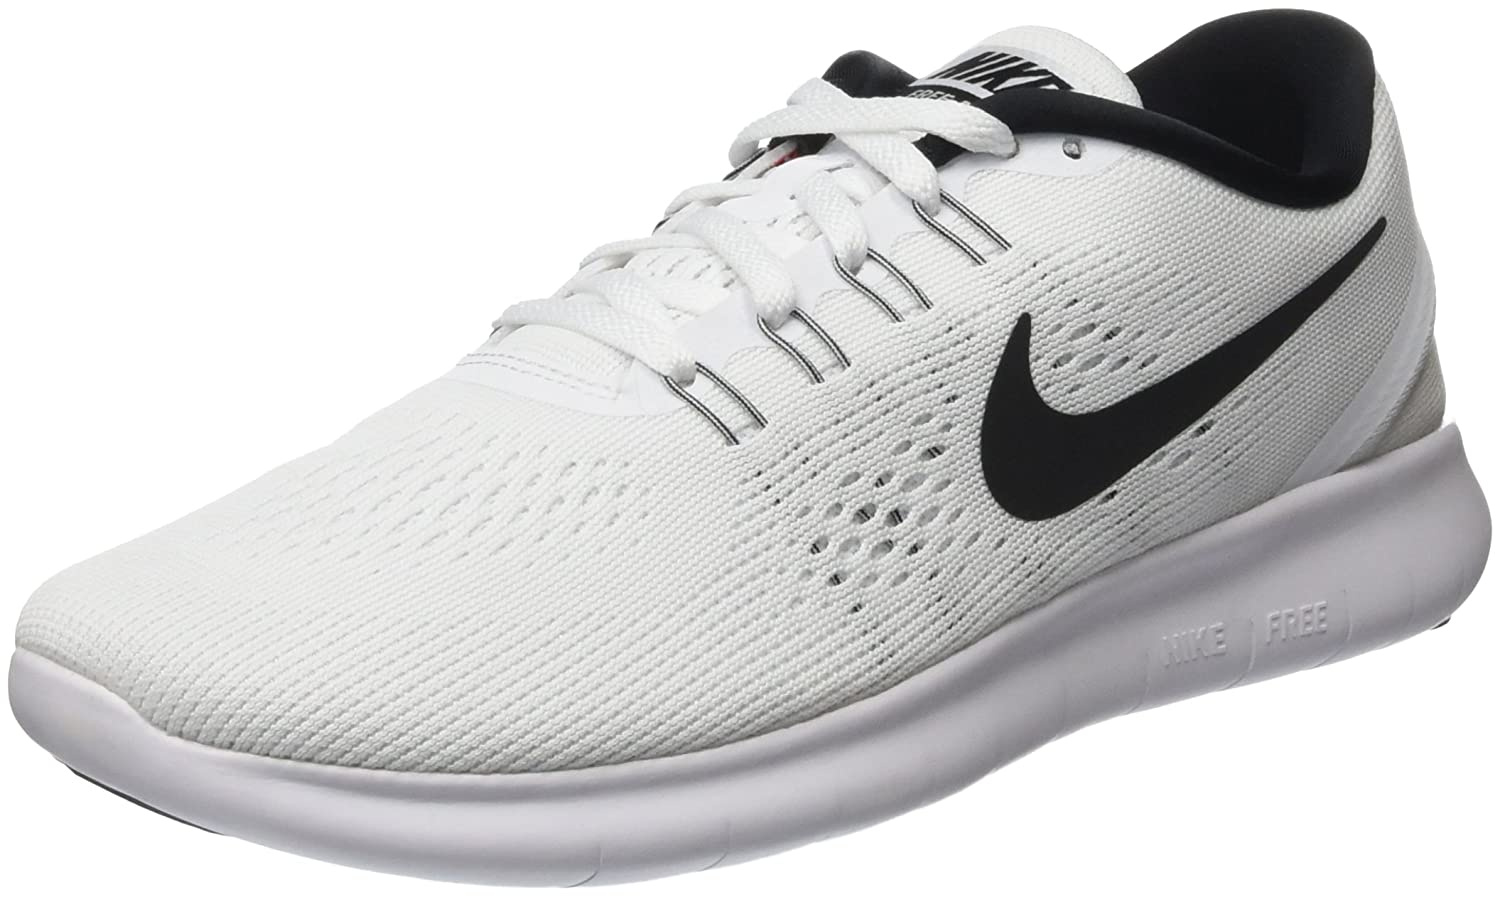 NIKE Men's Free RN Running Shoe B0147SM9EK 7.5 D(M) US|White/Black